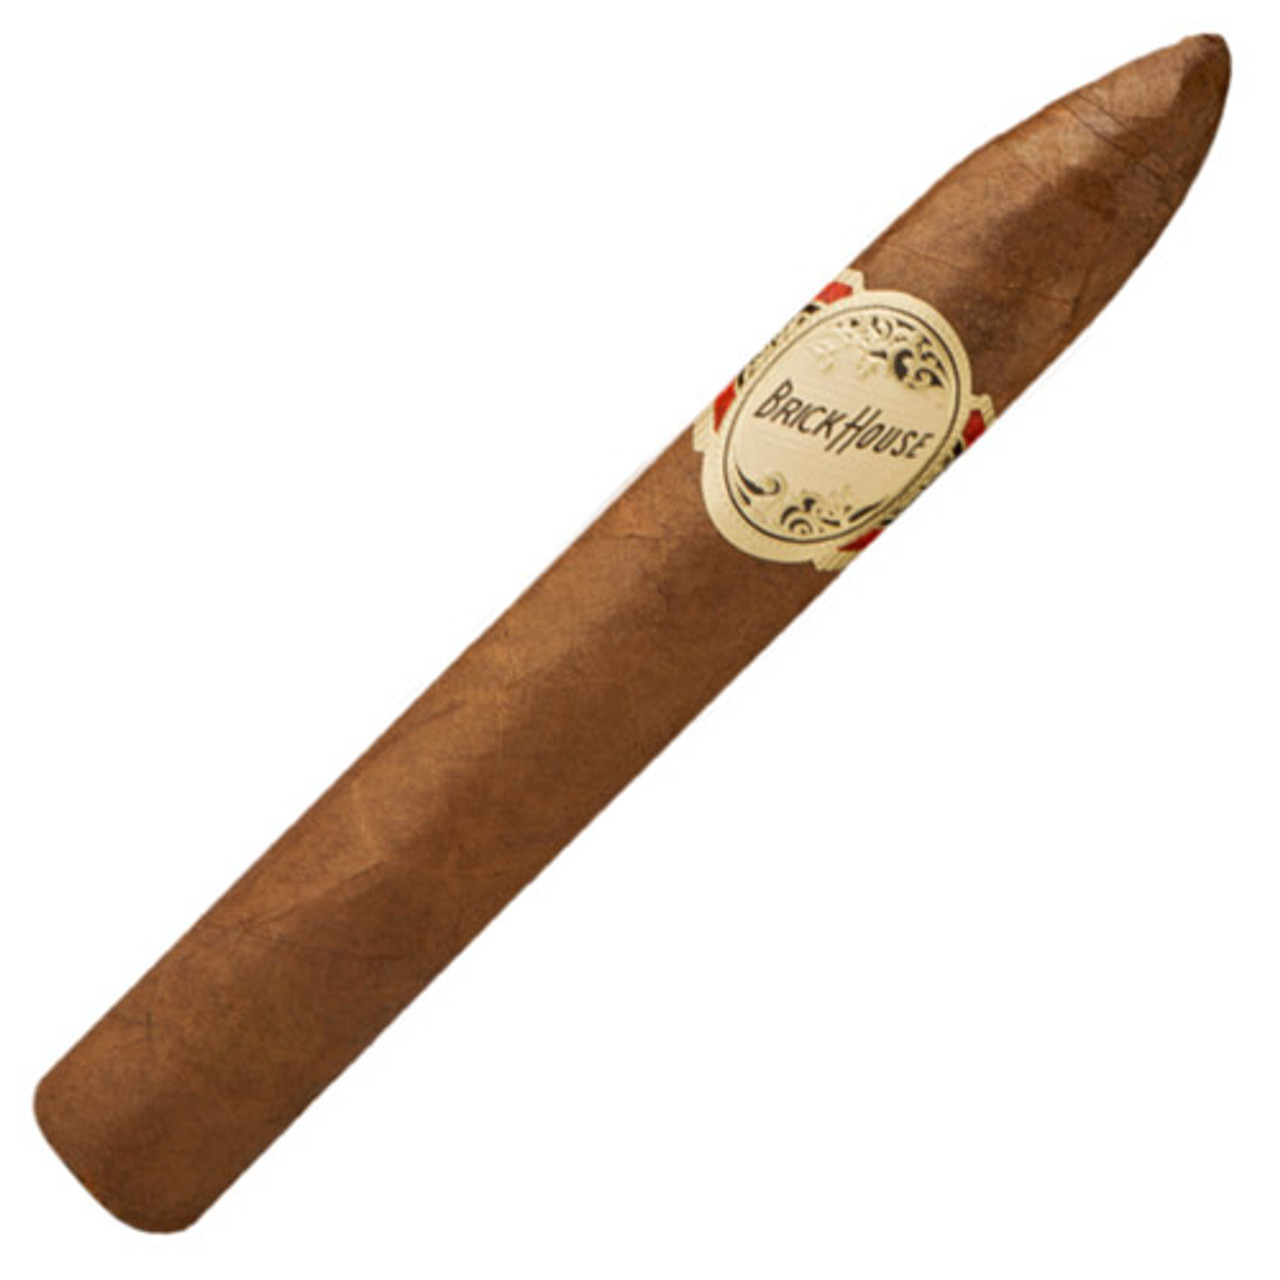 Brick House Short Torpedo Cigars - 5.5 x 52 (Box of 25)